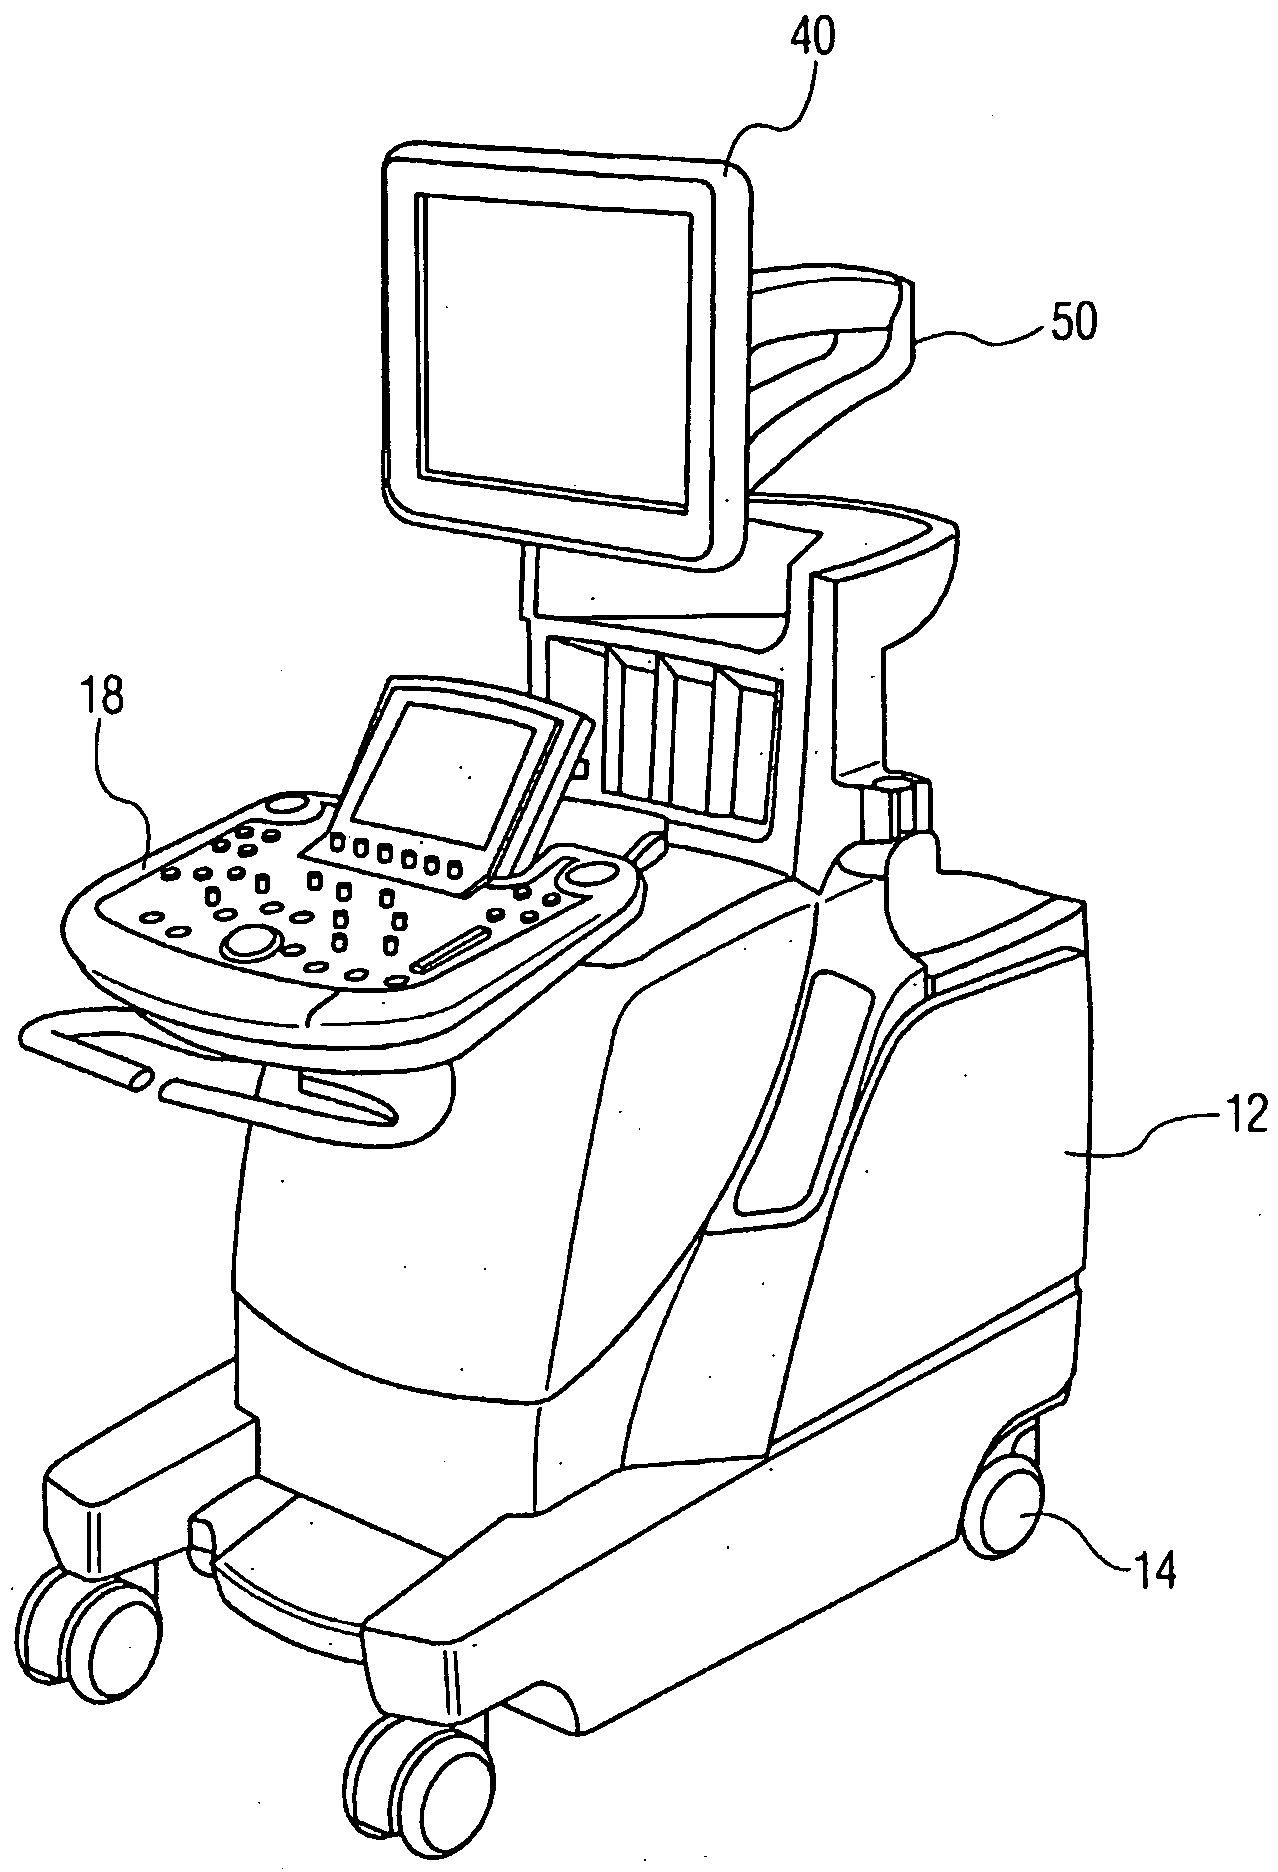 Articulated Arm Ultrasound : Patent us  diagnostic ultrasound system with